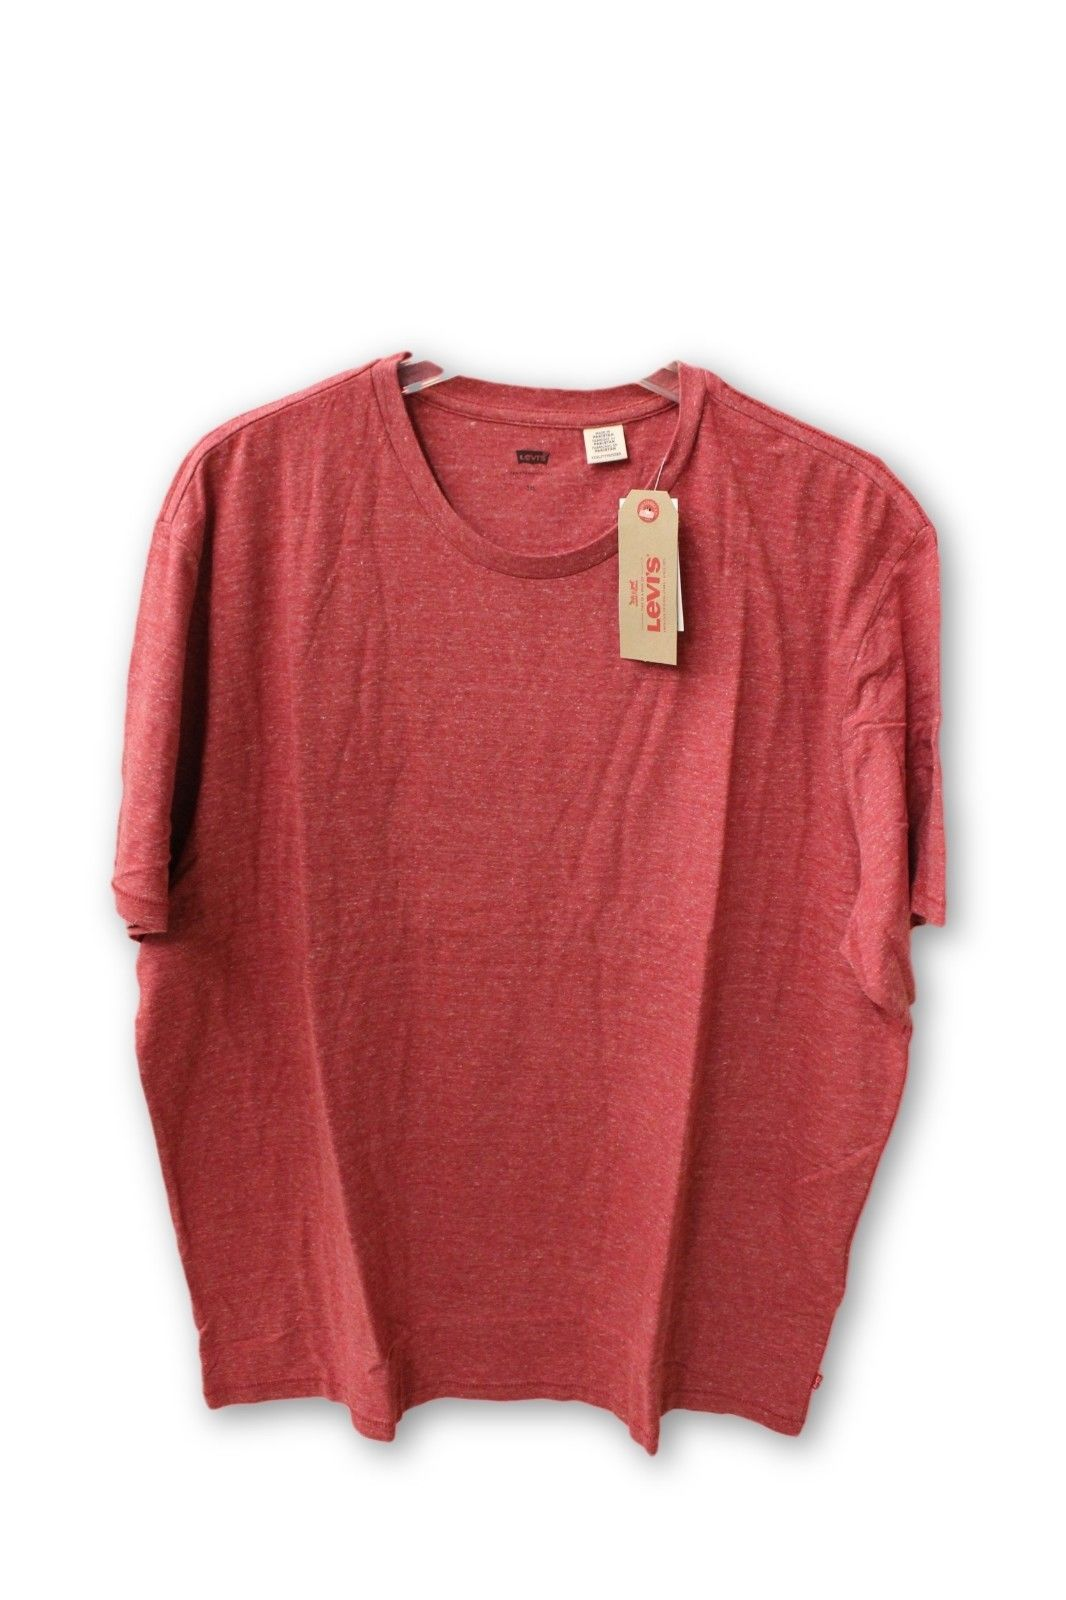 7fad830515a1 Levi's Men's Red T Shirt 3XL NWT – Cheap Maggies